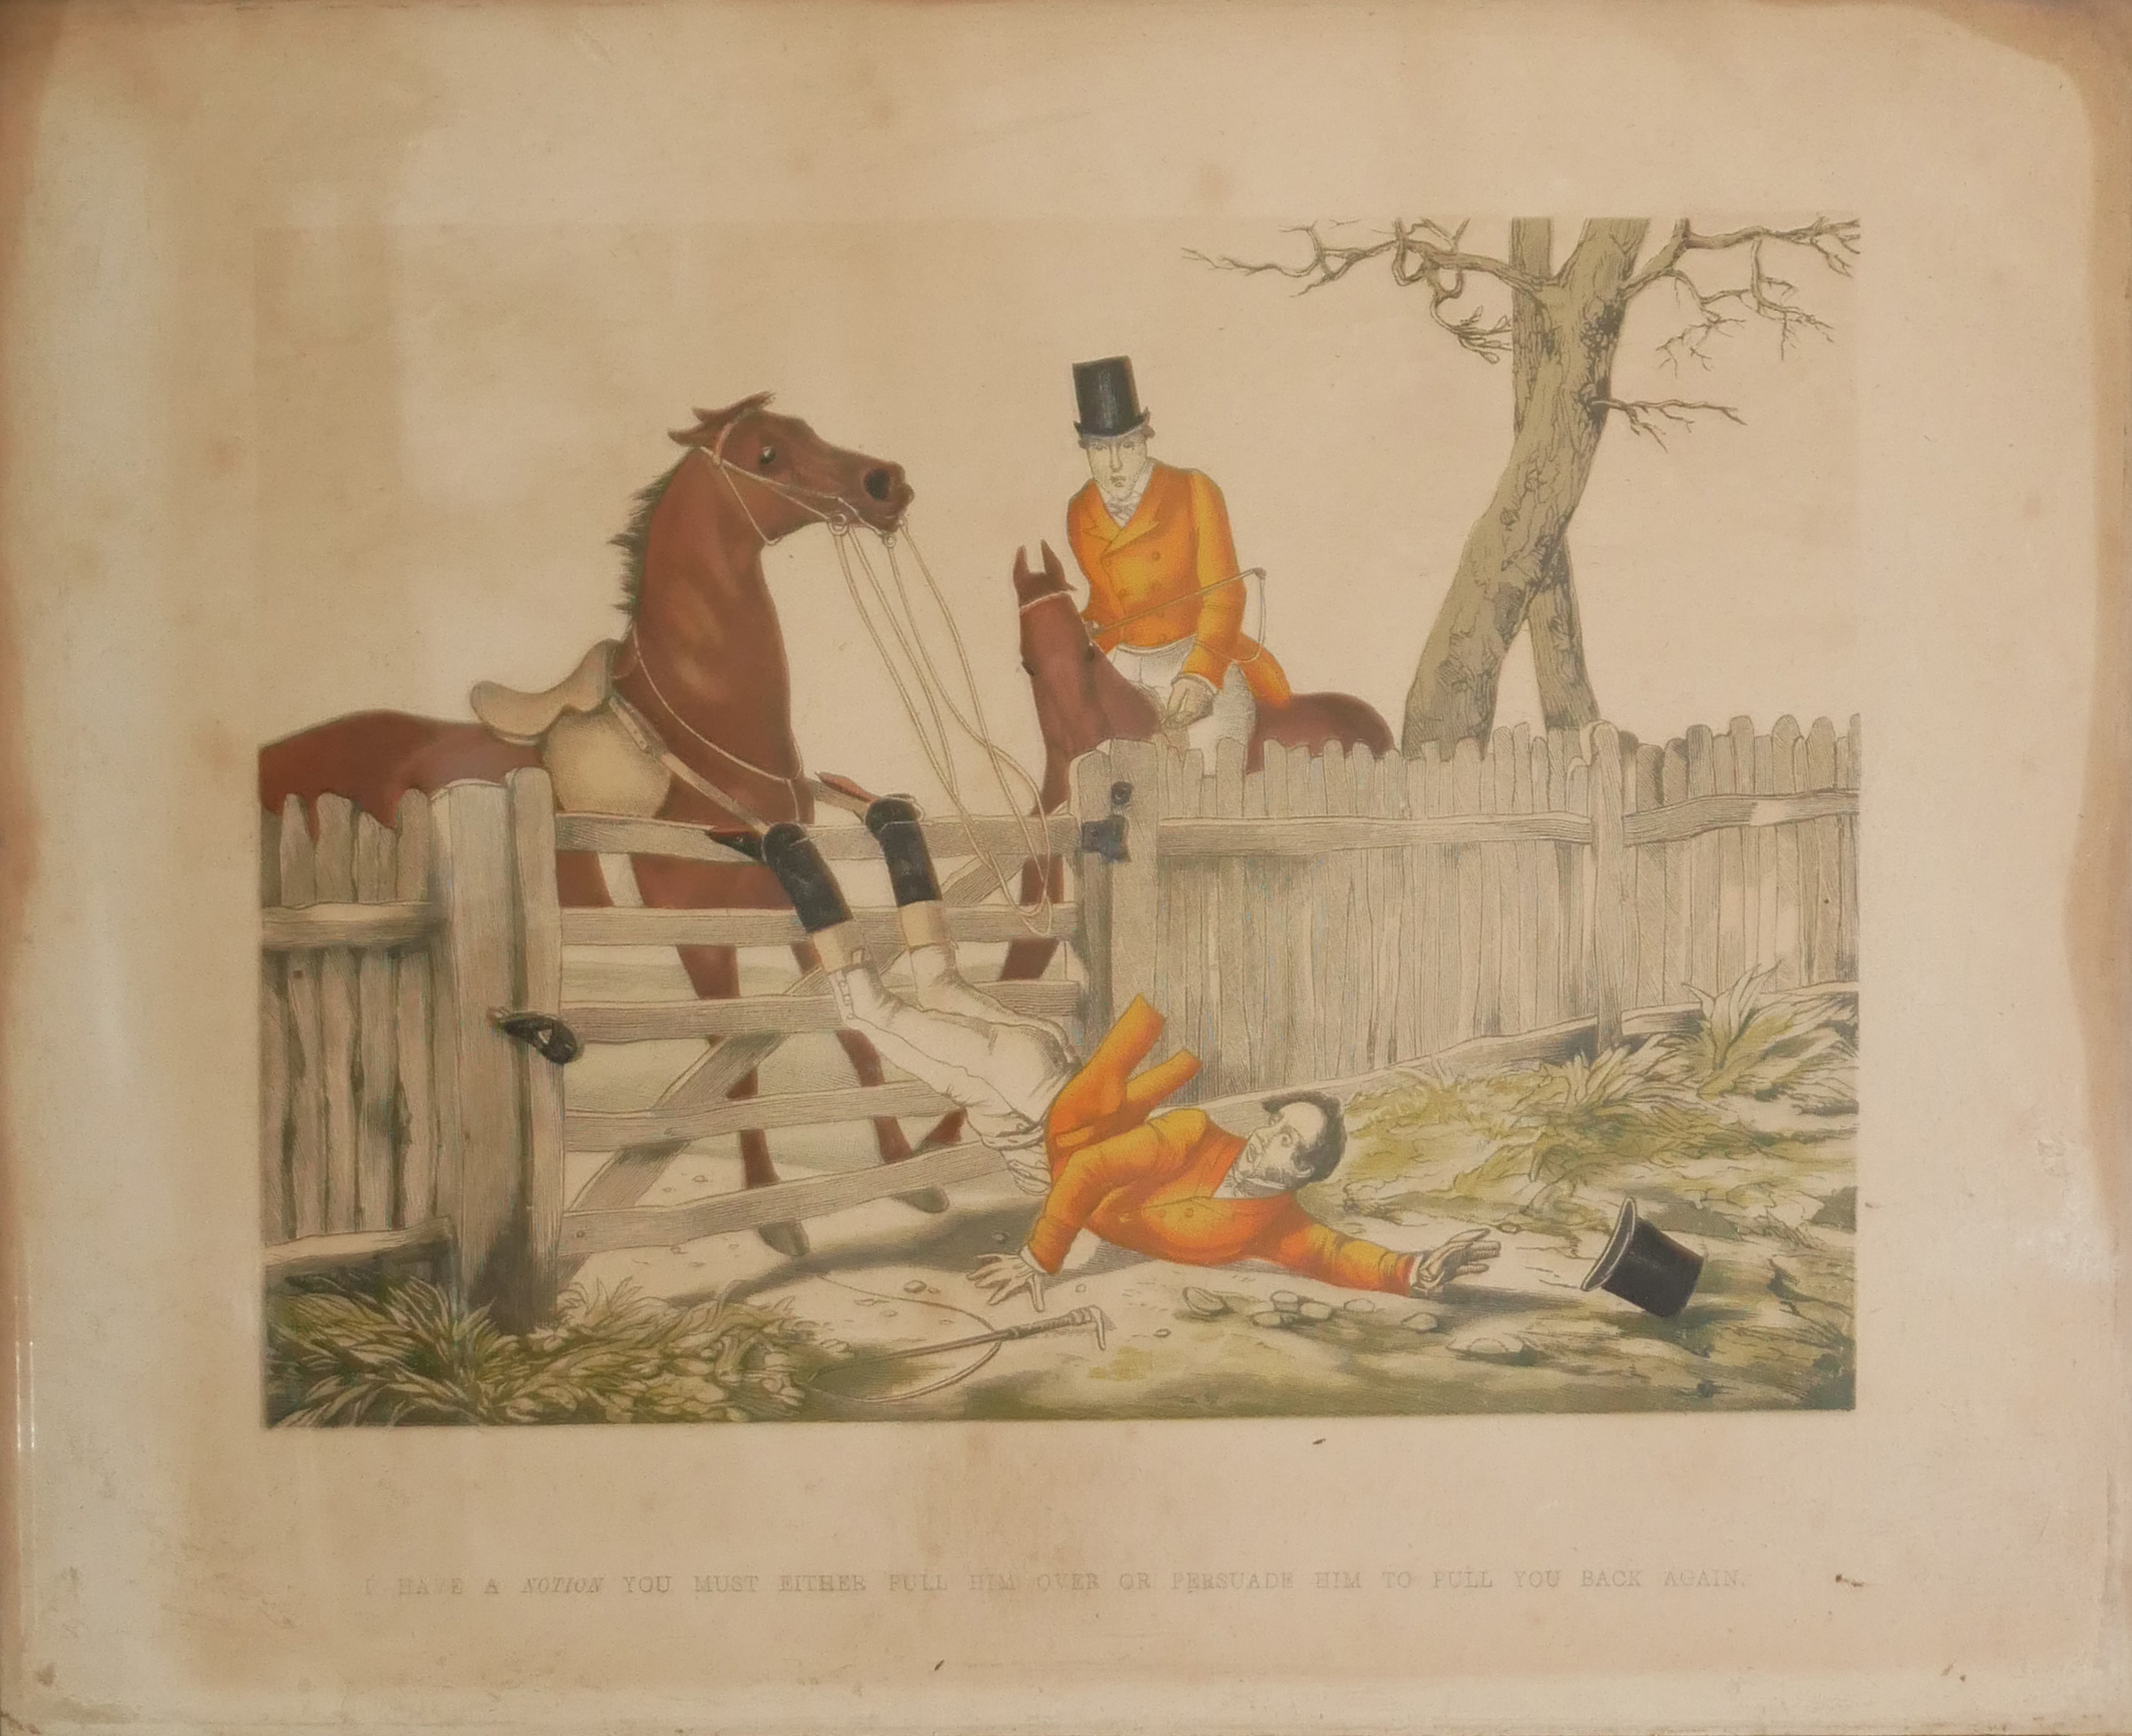 A COLLECTION OF SPORTING COLOURED ENGRAVINGS To include a scene Ben Marshall - notions series, - Image 5 of 7